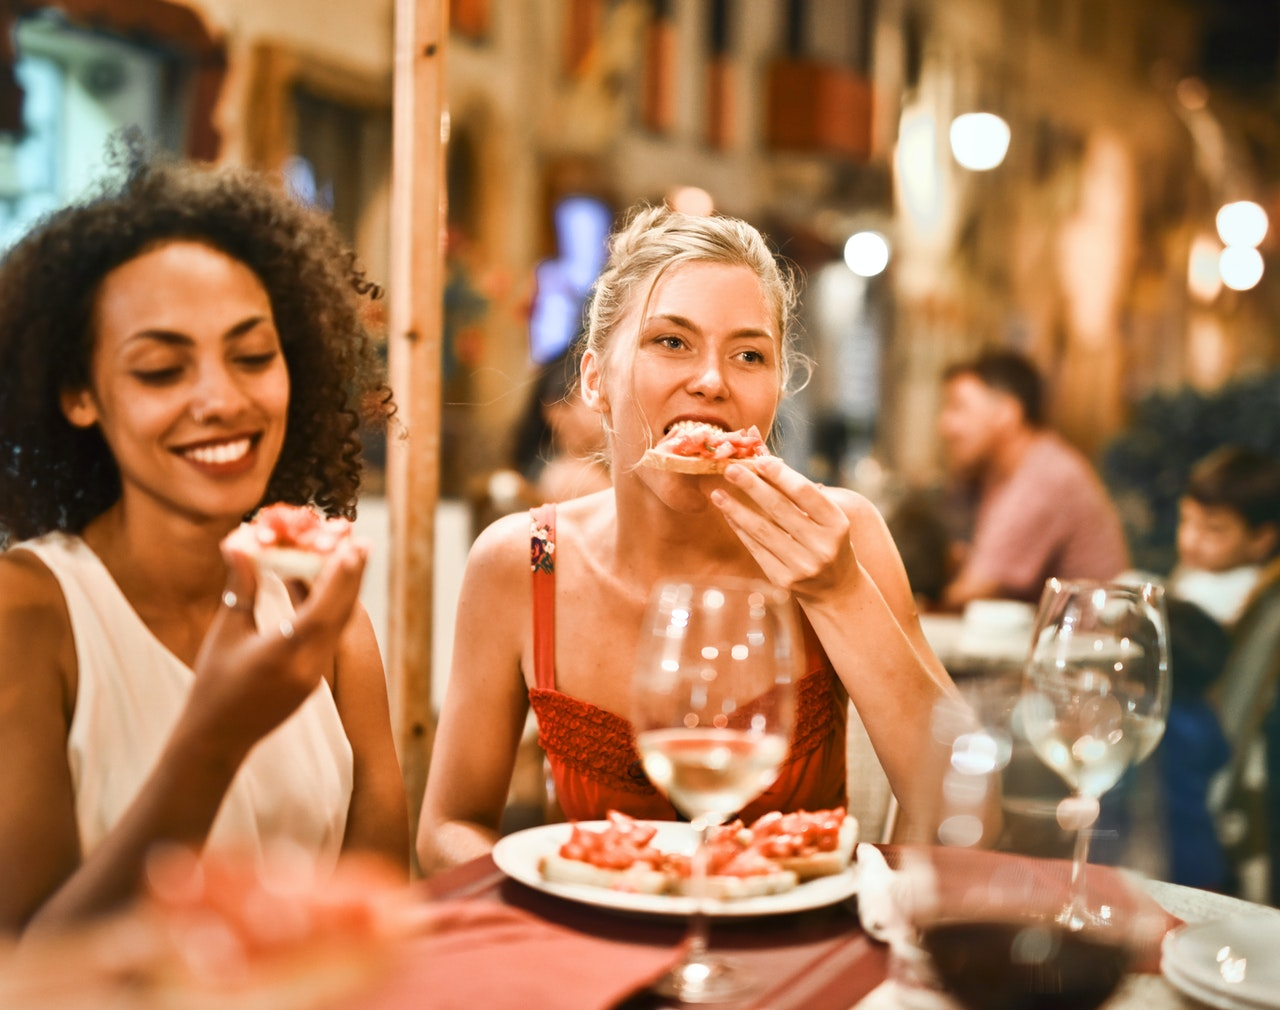 Two female friends smile and eat pizza in an outdoor eating area